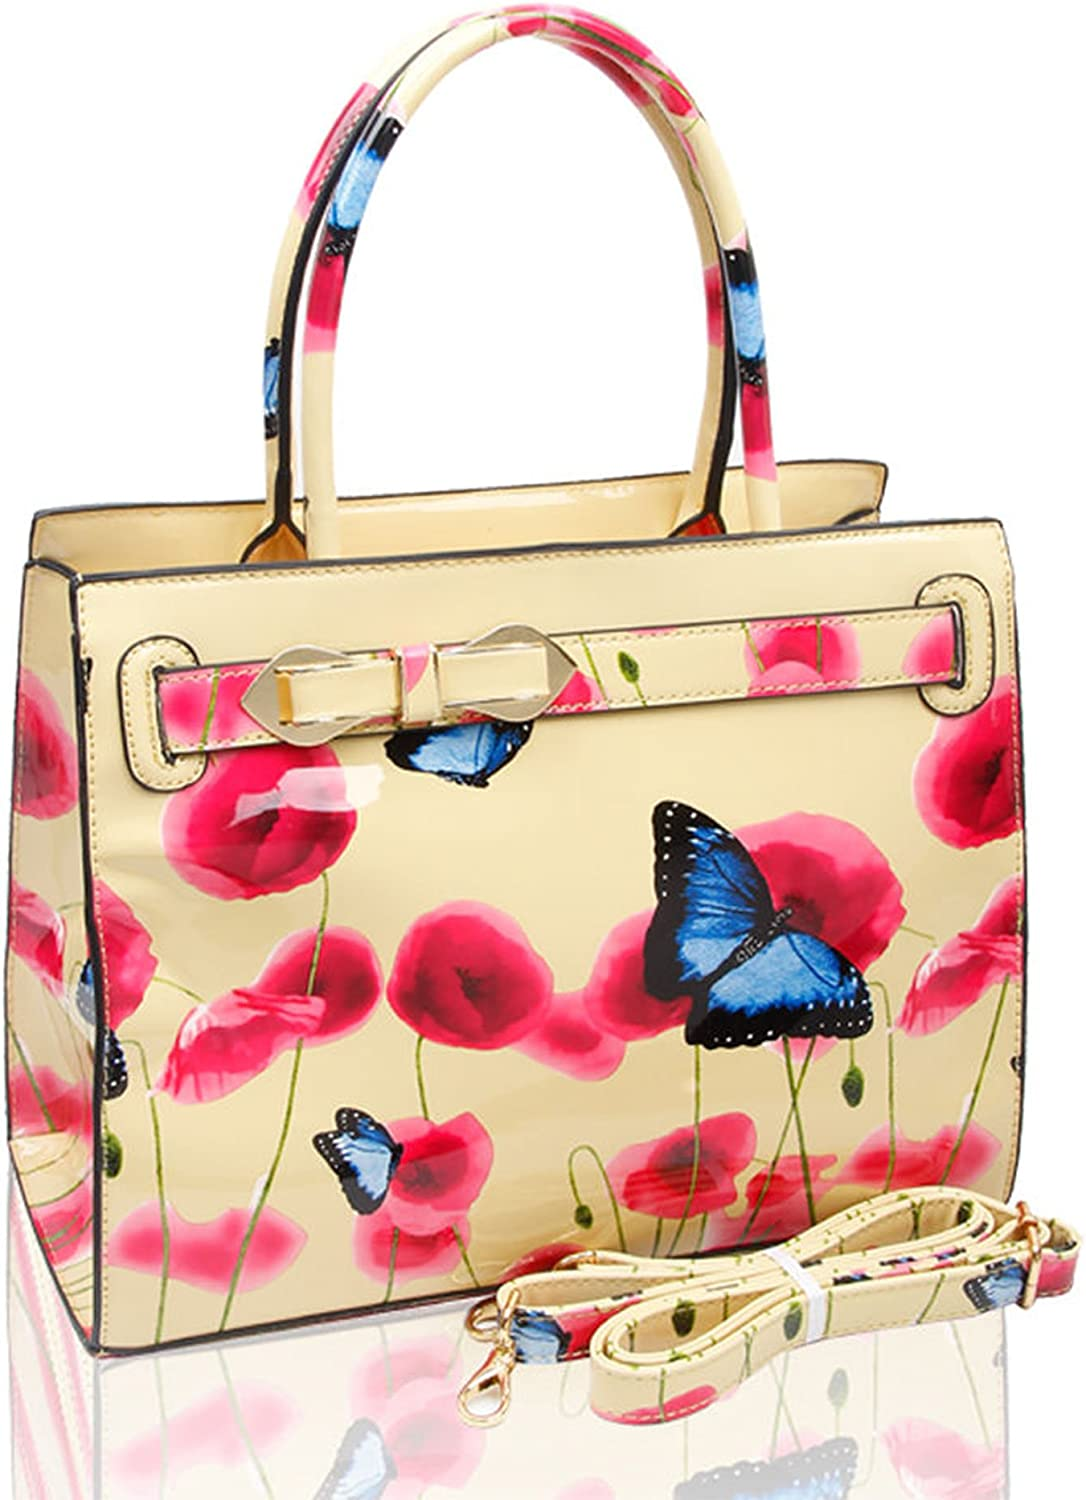 Women Floral Butterfly Print Shiny Patent Shoulder Handbag Tote Top-Handle Bag